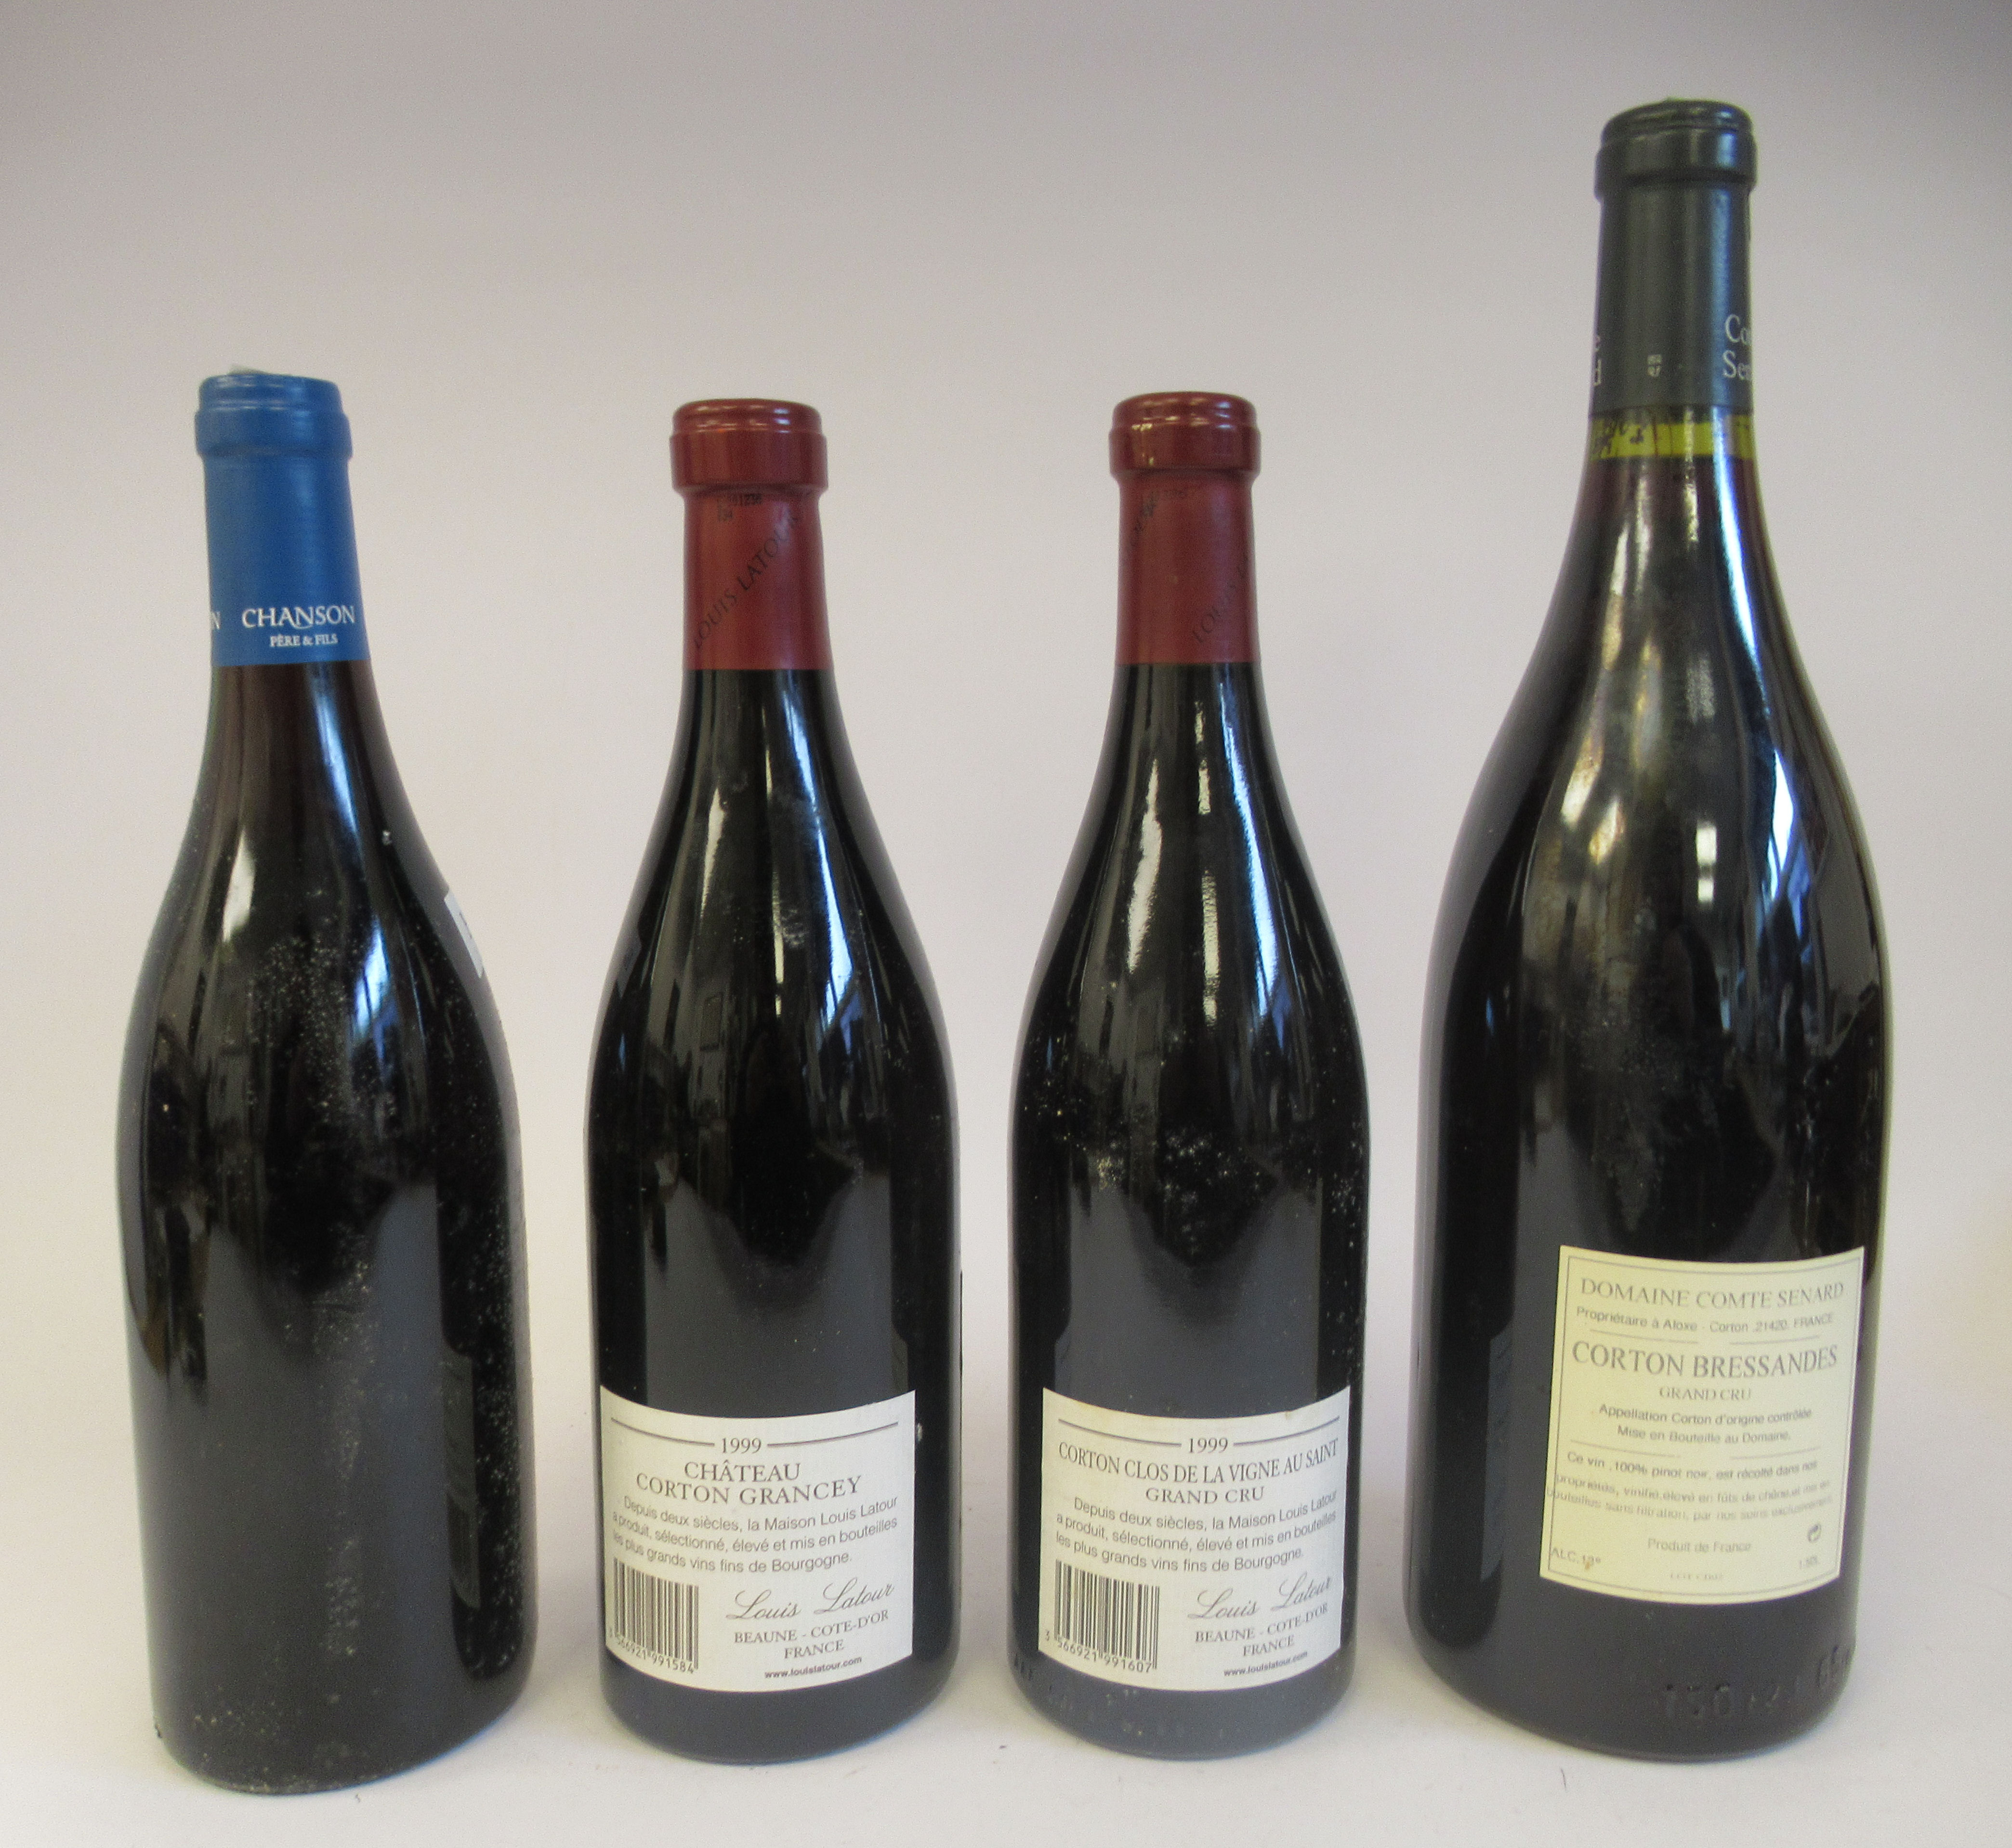 Wine, three bottles of 1999 Chateau Corton; and a magnum of Corton Bressandes Grand Cru - Image 4 of 5